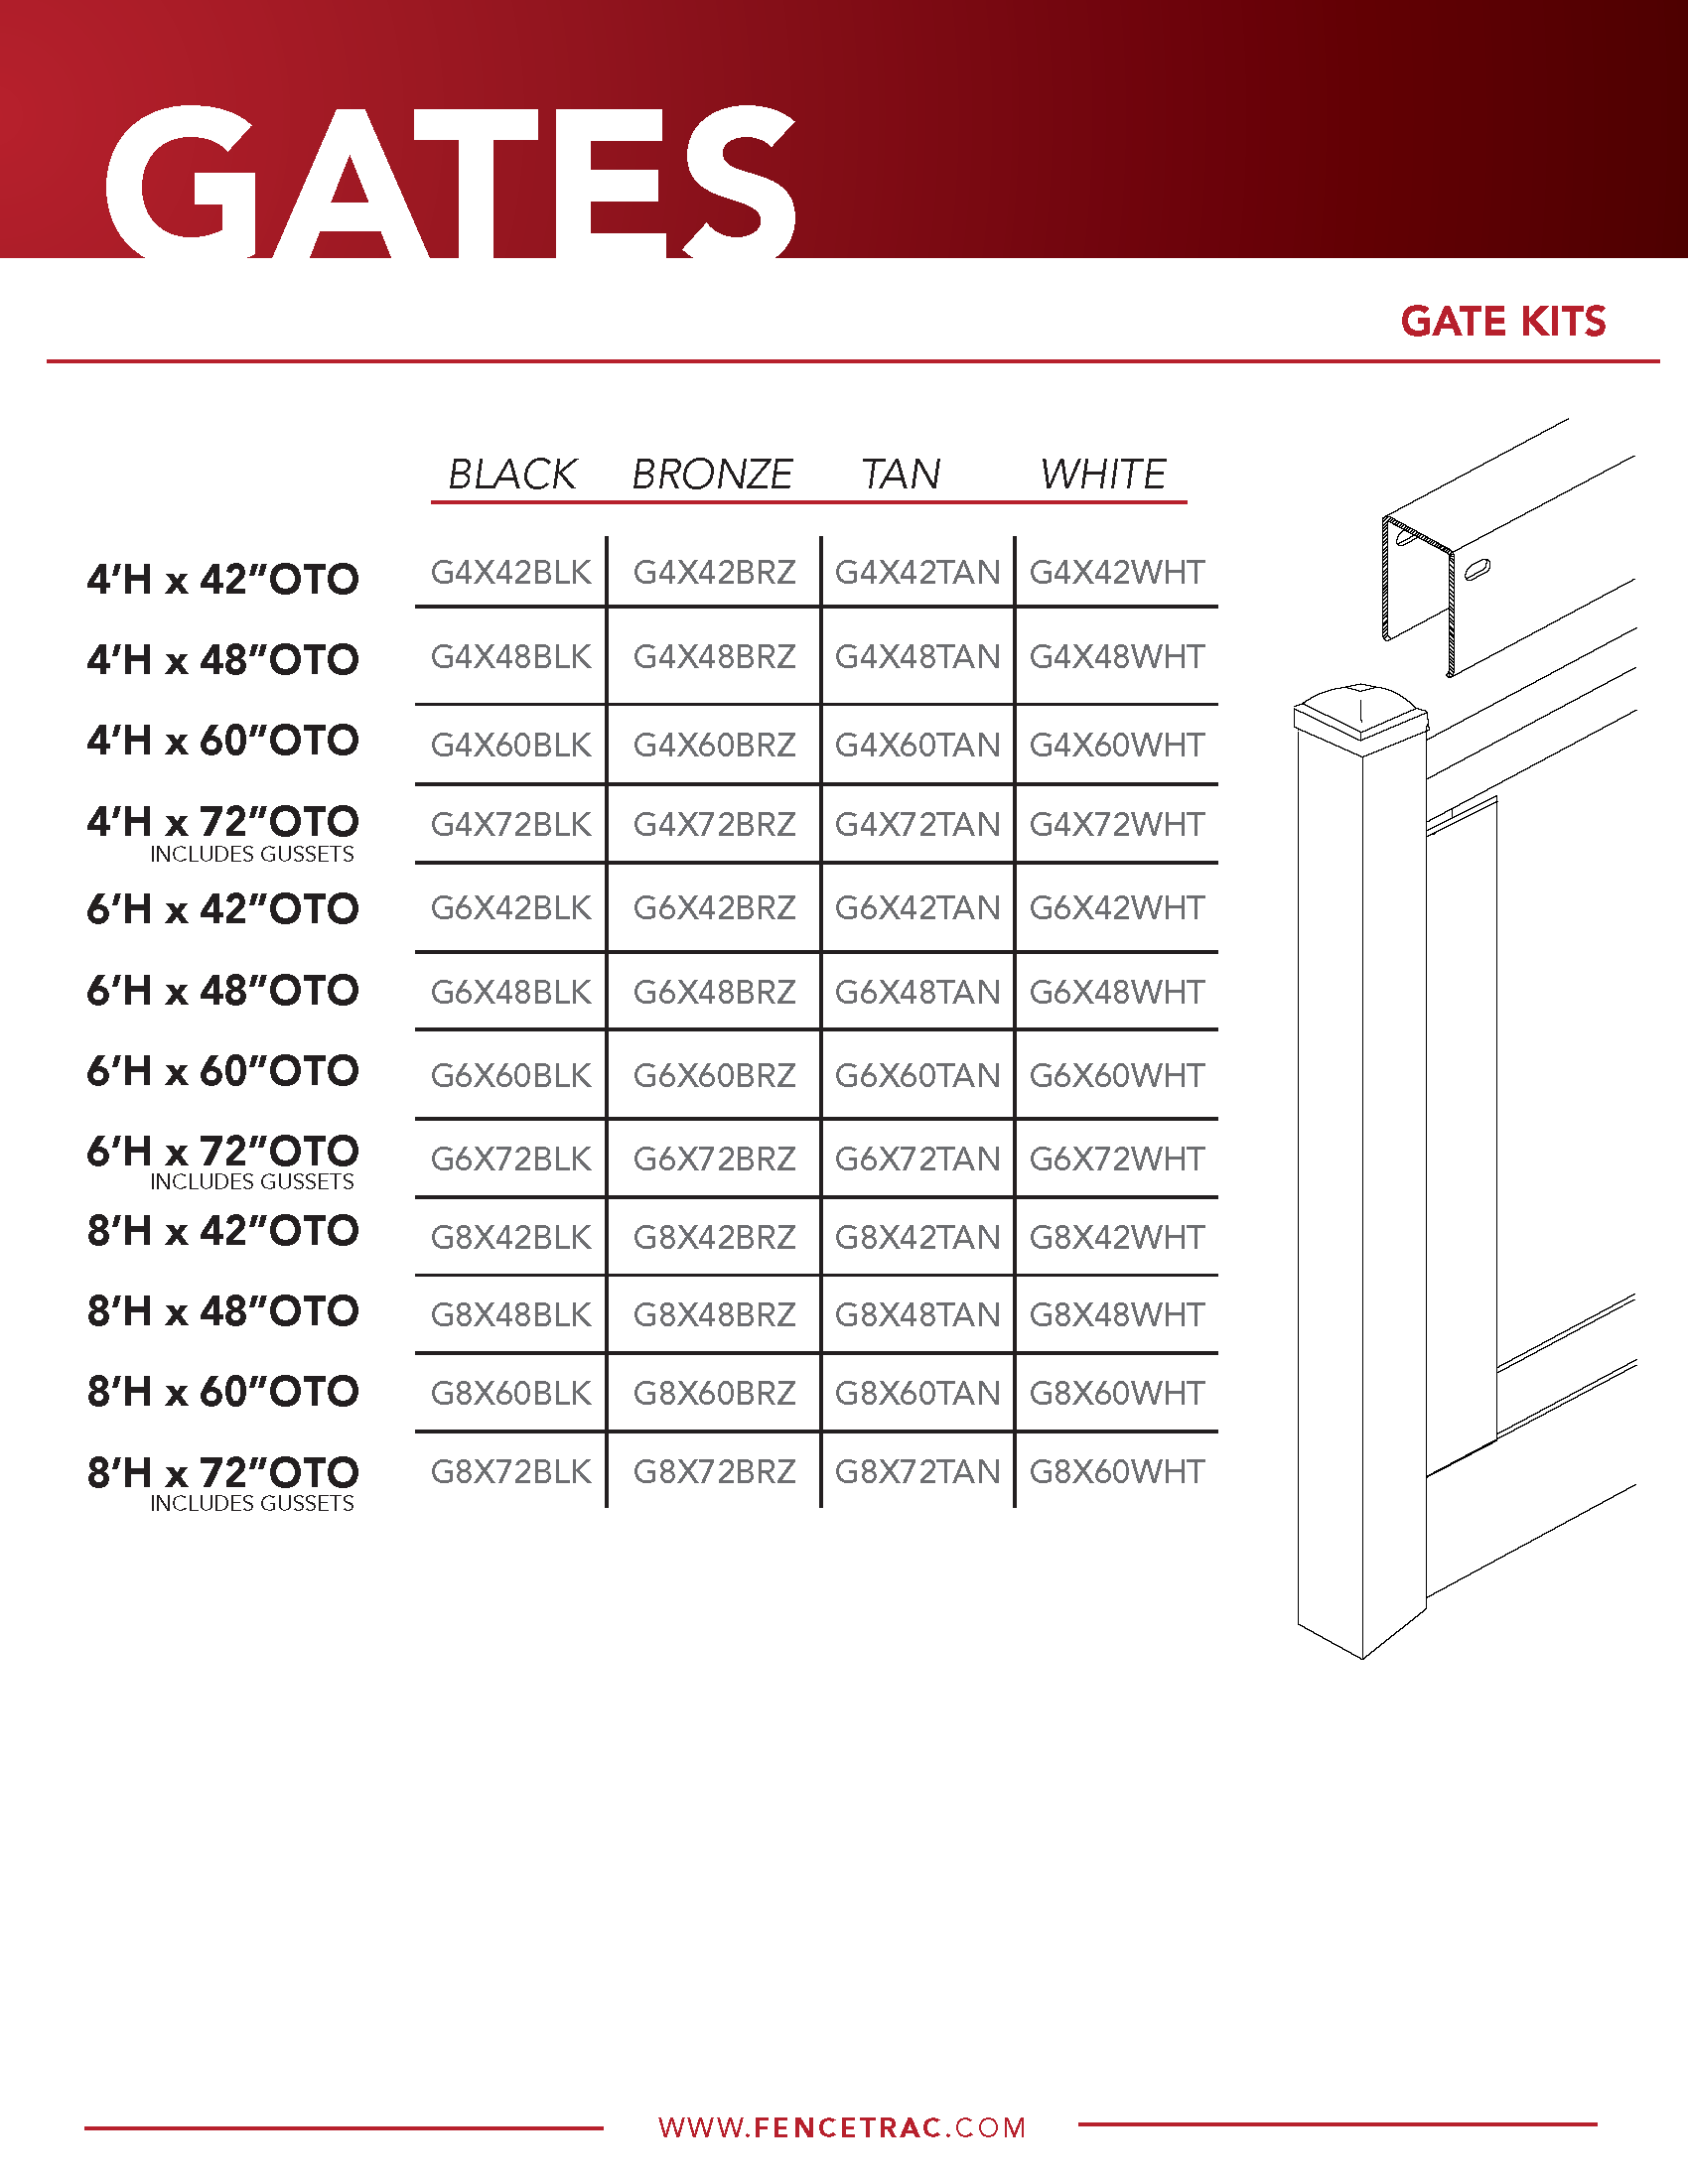 FenceTrac Fence Gate Specs